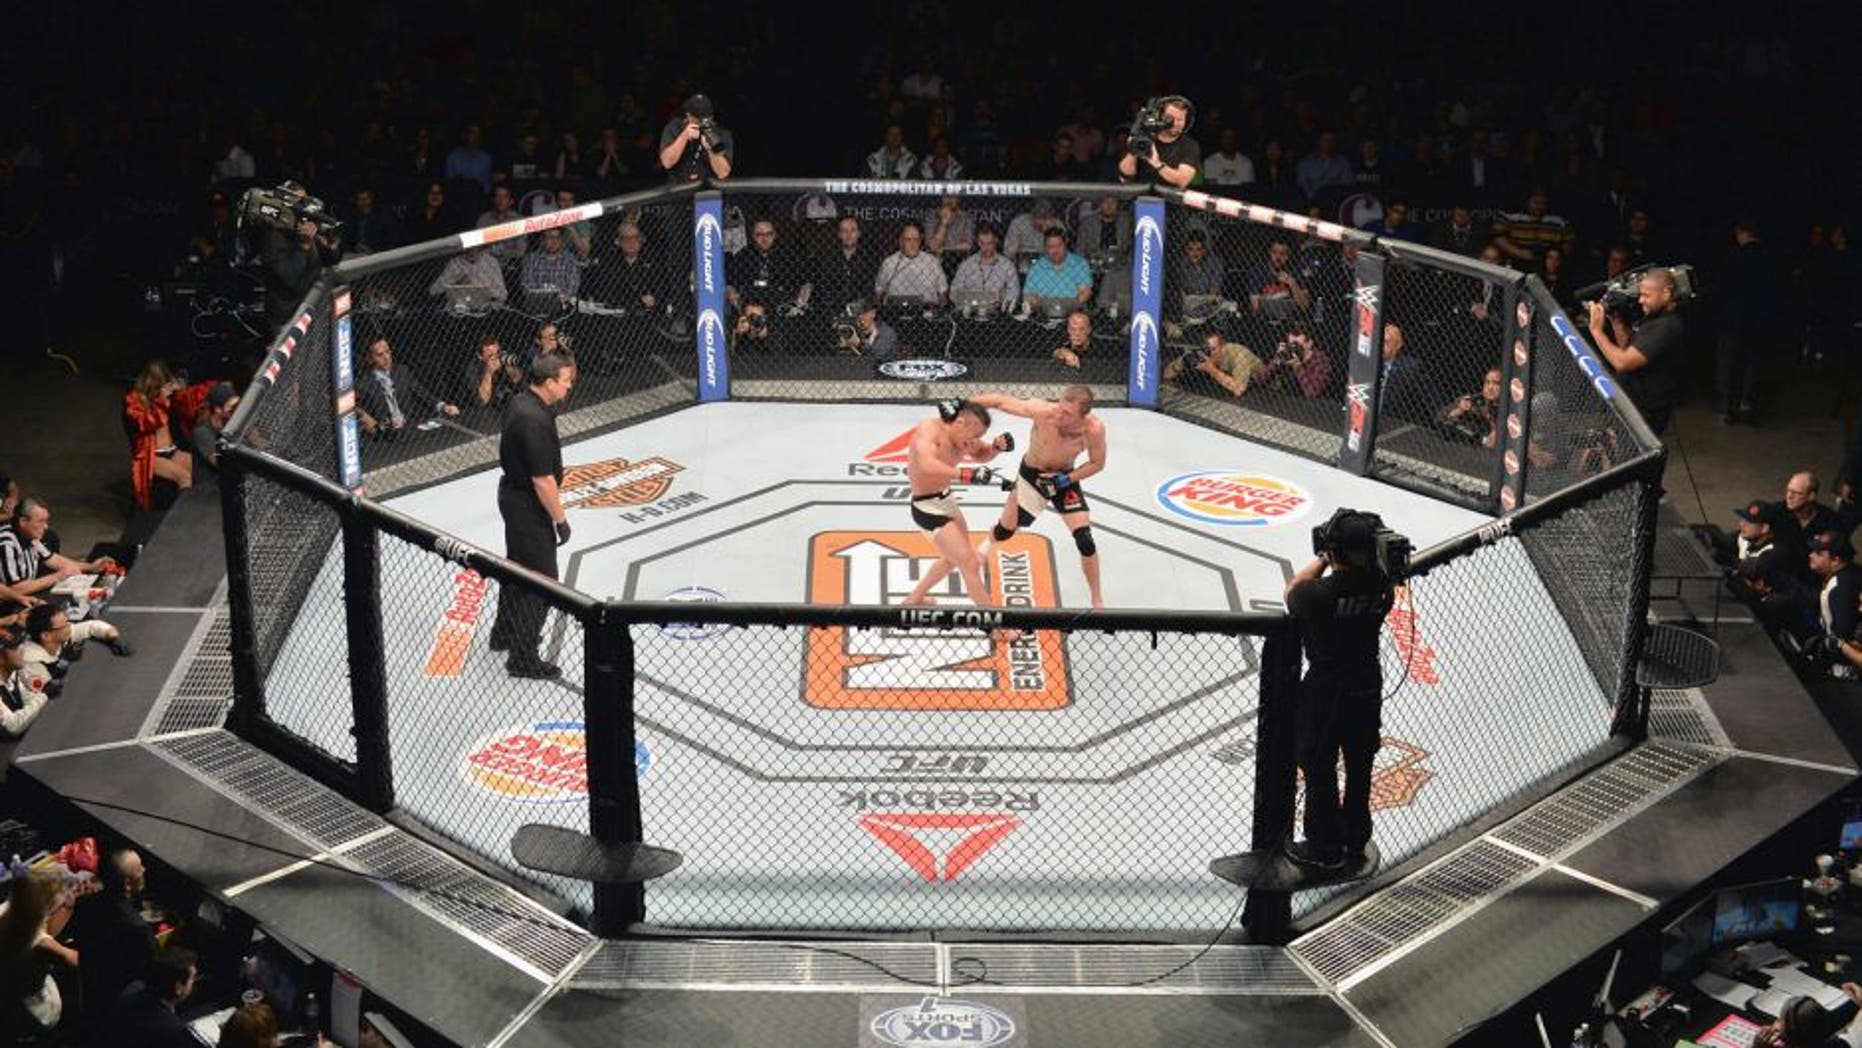 LAS VEGAS, NV - DECEMBER 11: An overhead view of the Octagon as Jason Knight punches Tatsuya Kawajiri in their featherweight bout during the TUF Finale event inside The Chelsea at The Cosmopolitan of Las Vegas on December 11, 2015 in Las Vegas, Nevada. (Photo by Brandon Magnus/Zuffa LLC/Zuffa LLC via Getty Images)